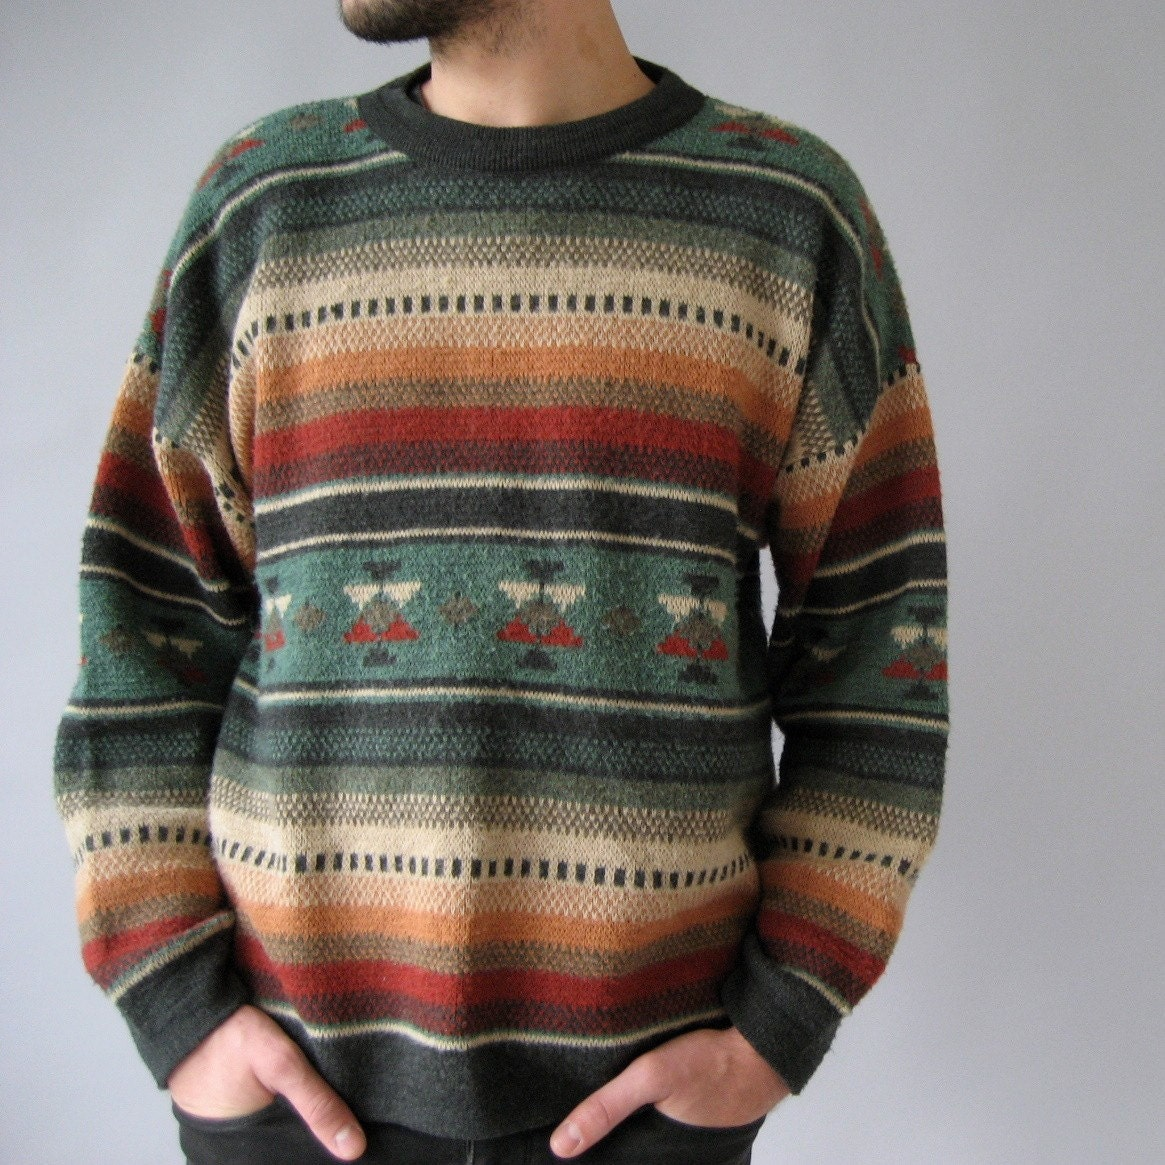 You searched for: aztec design sweater! Etsy is the home to thousands of handmade, vintage, and one-of-a-kind products and gifts related to your search. No matter what you're looking for or where you are in the world, our global marketplace of sellers can help you .